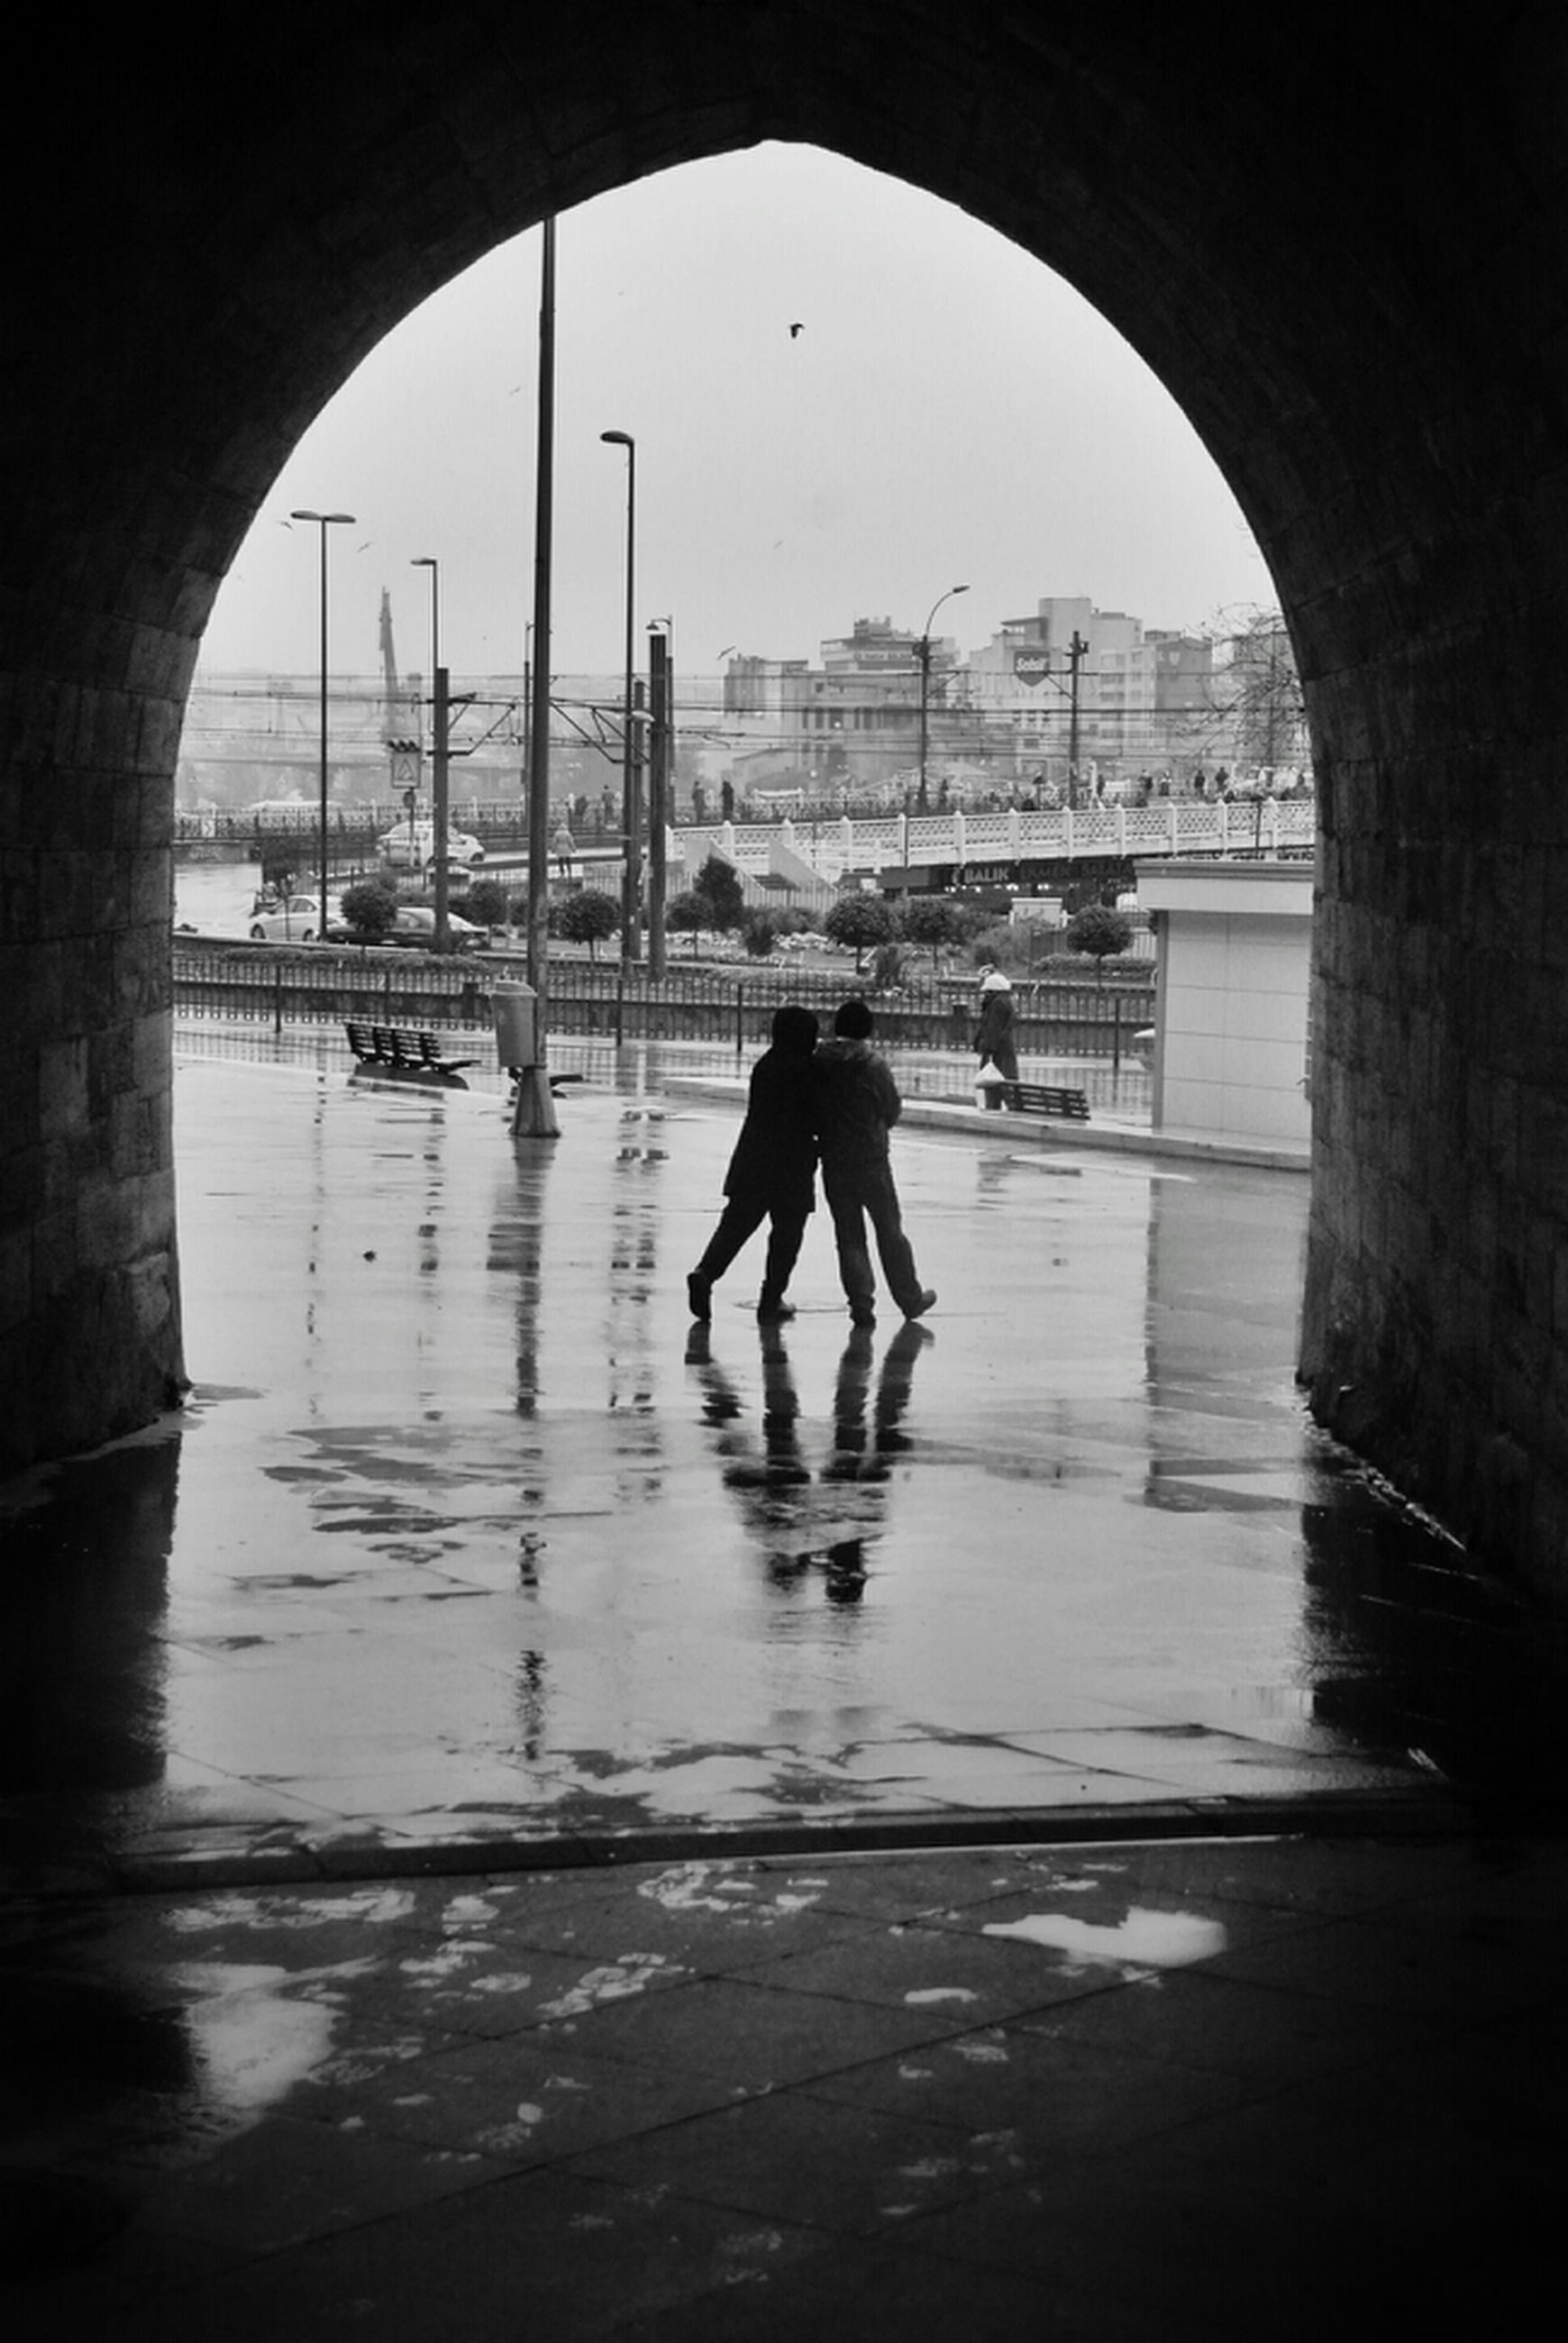 architecture, full length, built structure, walking, building exterior, rear view, men, water, city, lifestyles, arch, street, reflection, person, city life, rain, transportation, wet